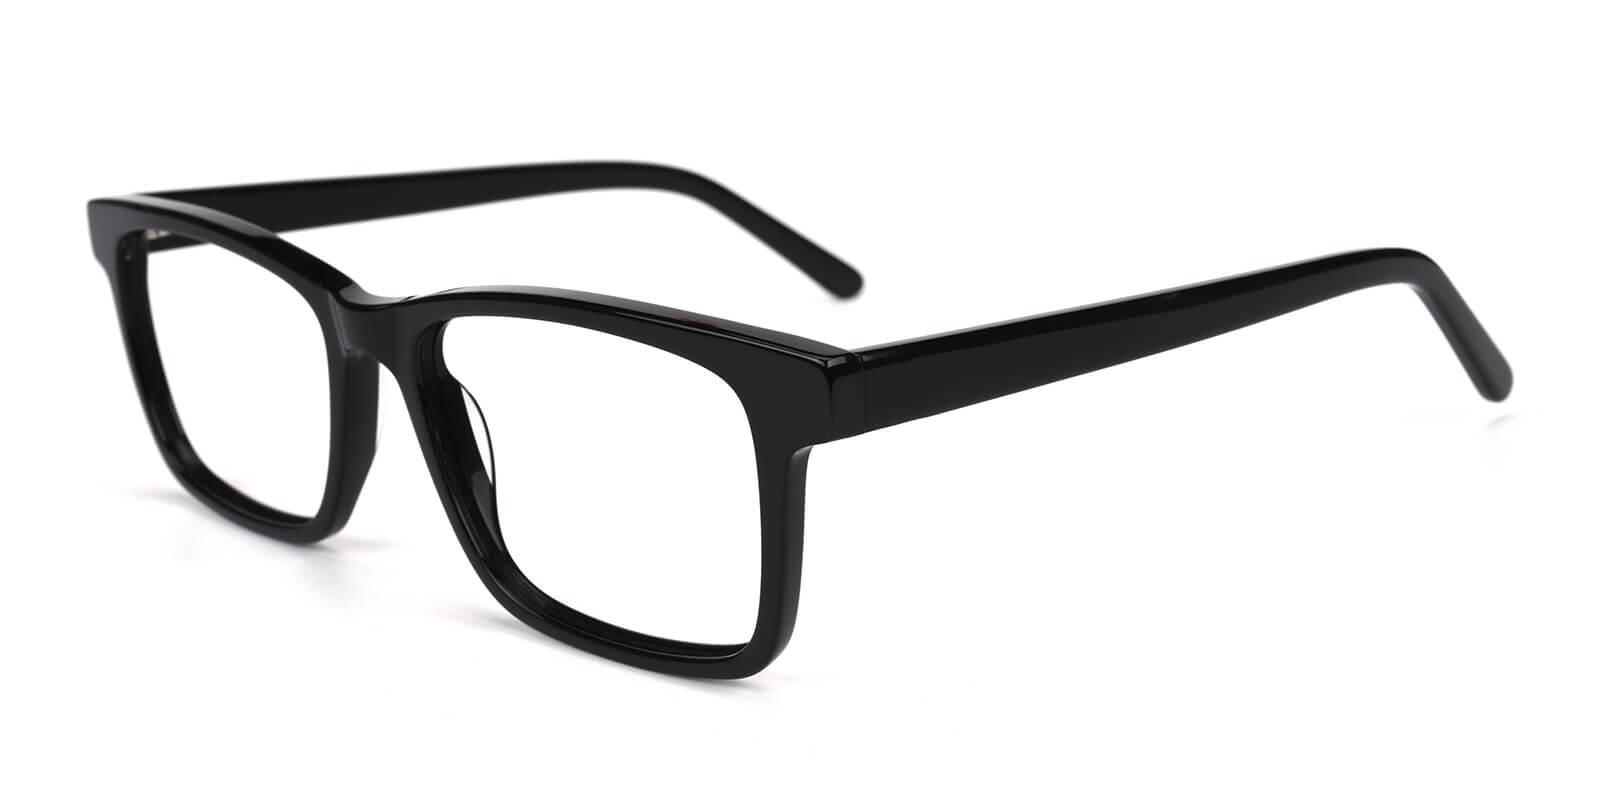 Richard-Black-Square-Acetate-Eyeglasses-additional1